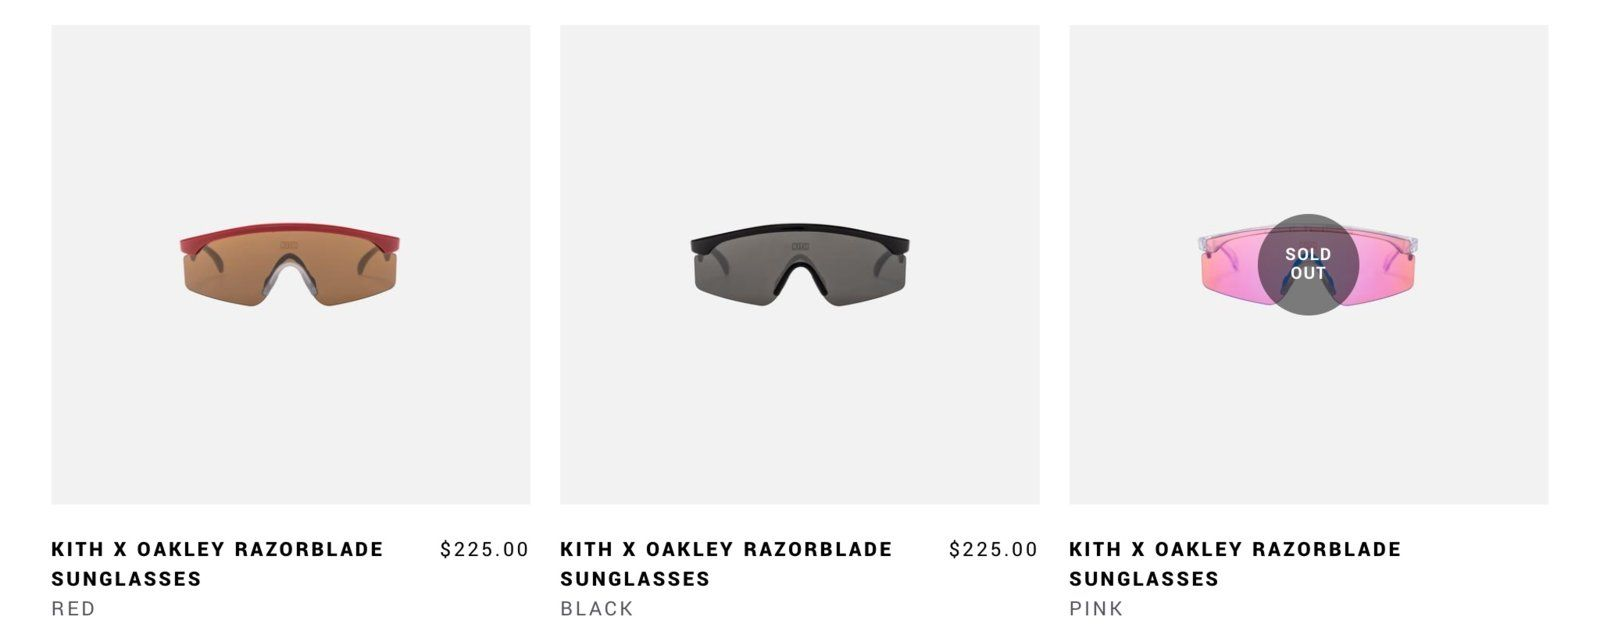 4e57293117886 3491B52B-9150-41C0-B173-F1227FB78D8E.jpeg. KITH did a collaboration with  several brands one being Oakley